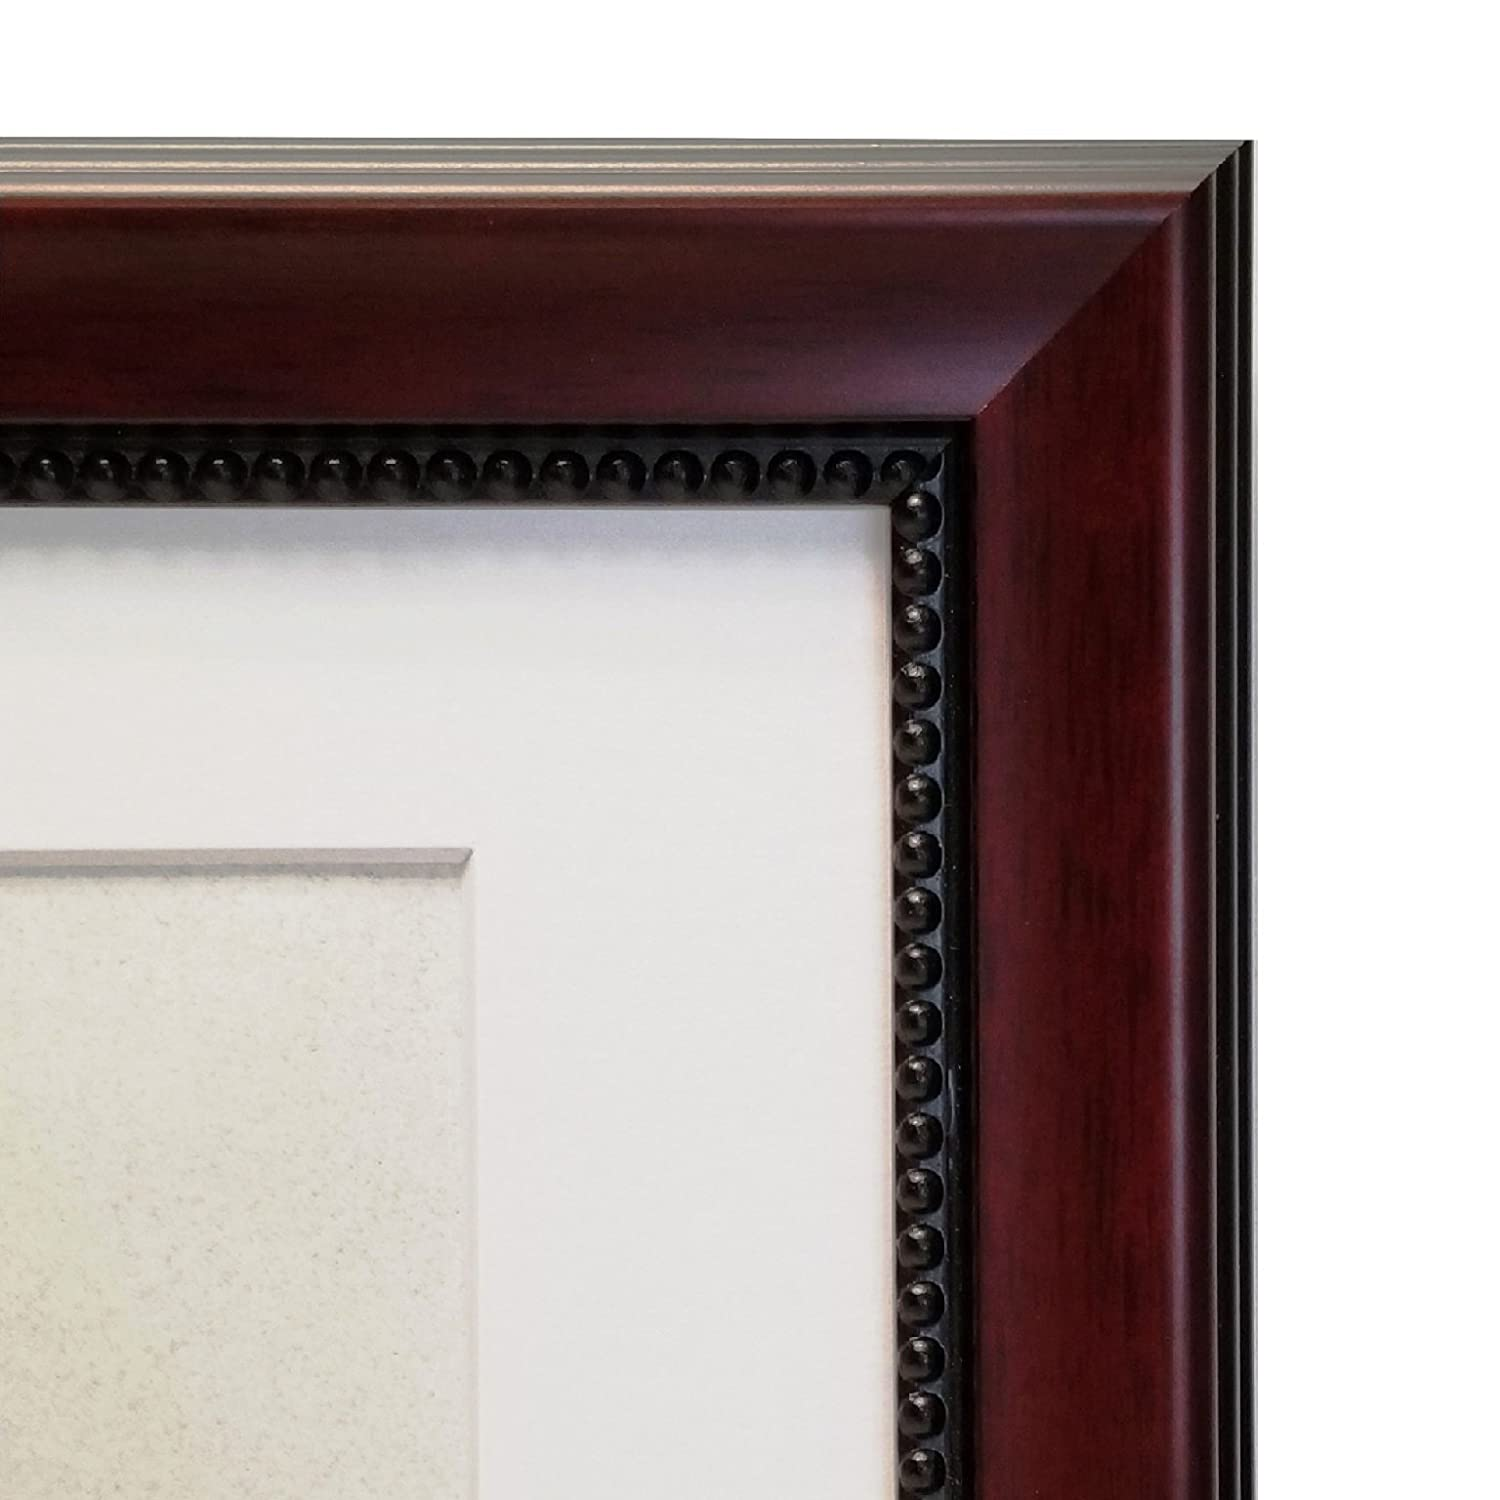 11-Inch by 14-Inch NBG Home 06FP481 Snap Silver Wall Frame